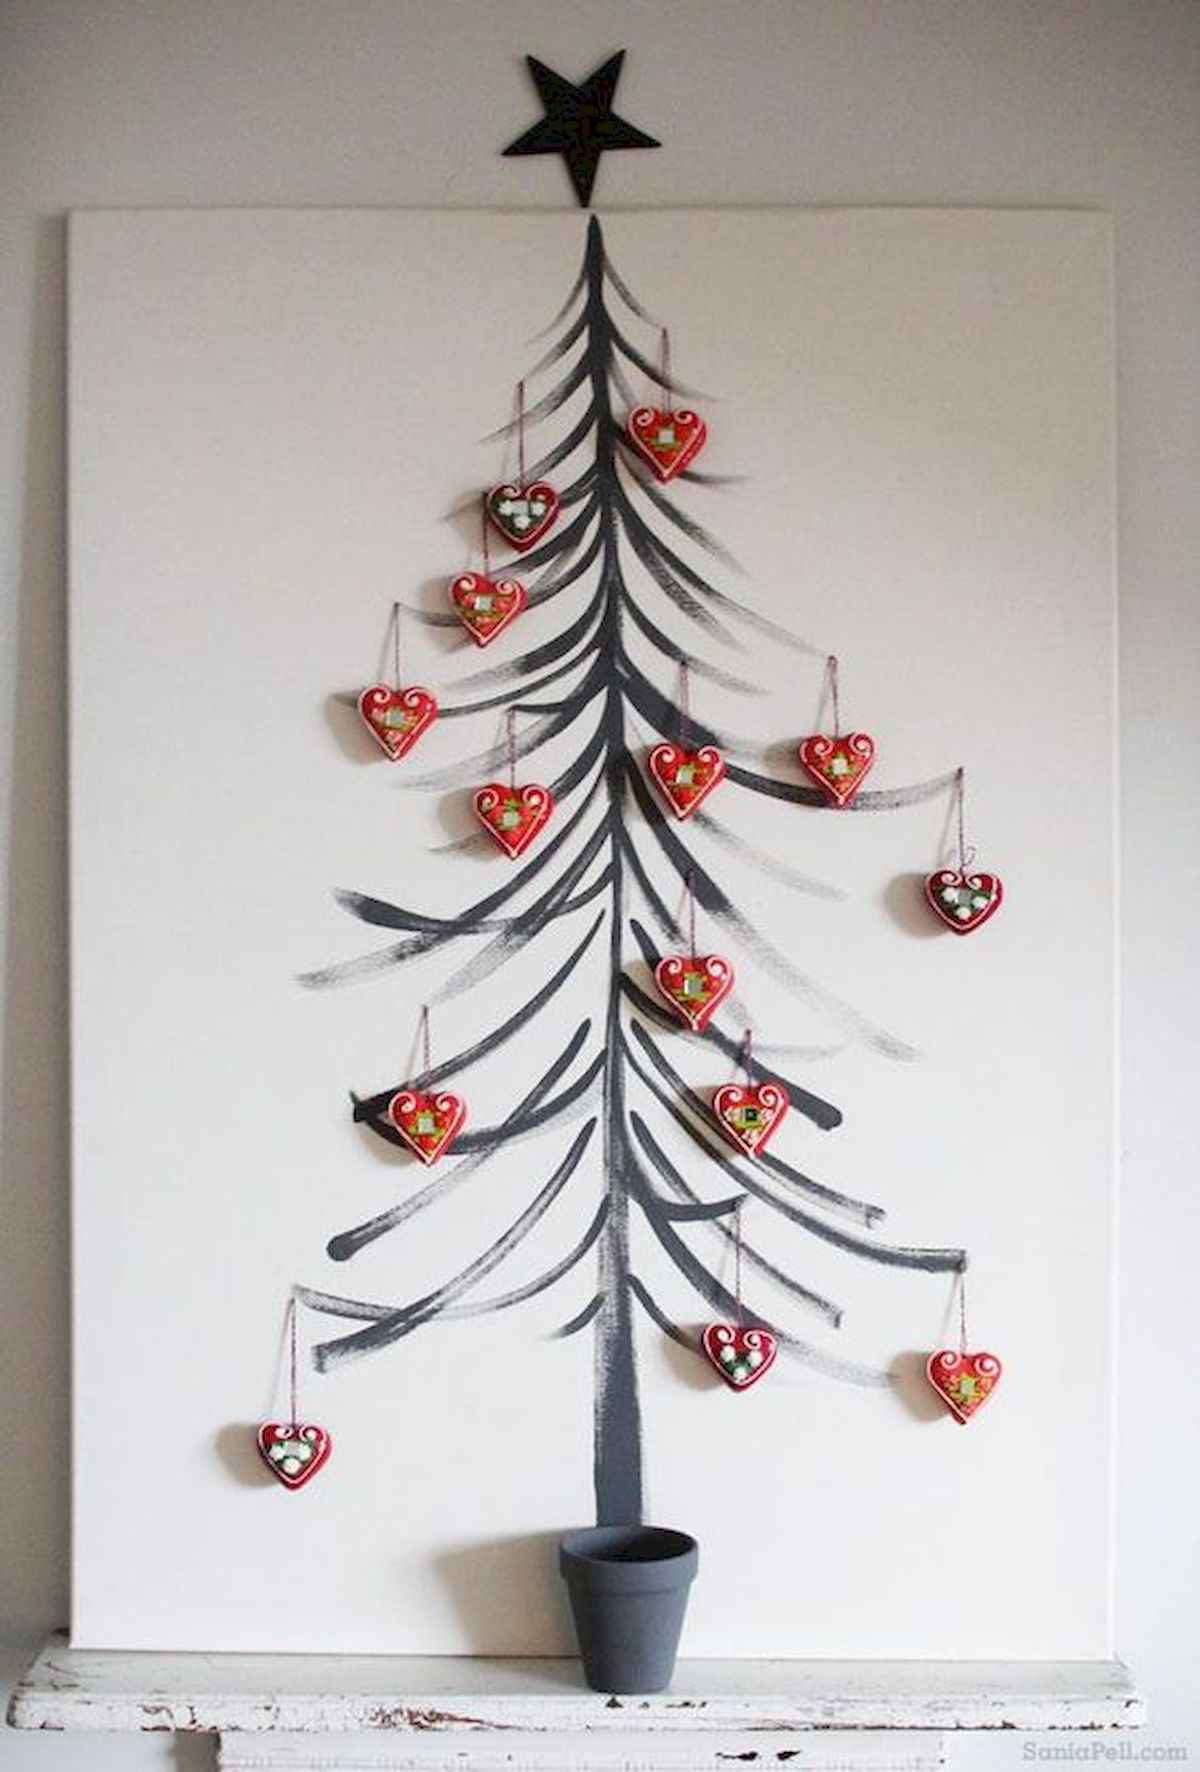 60 awesome wall art christmas ideas decorations (3)